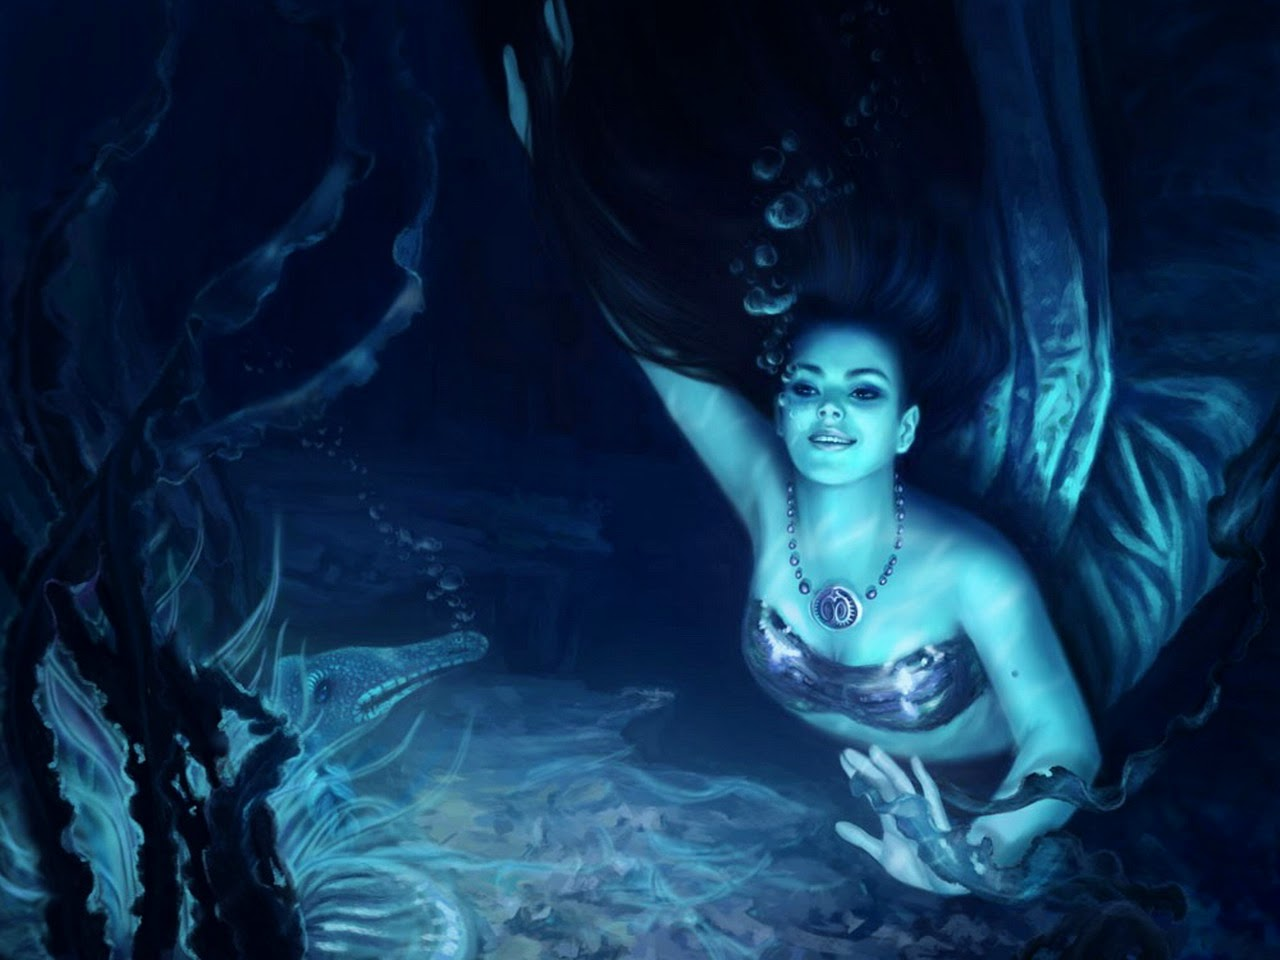 real life mermaid girls photography with photoshop